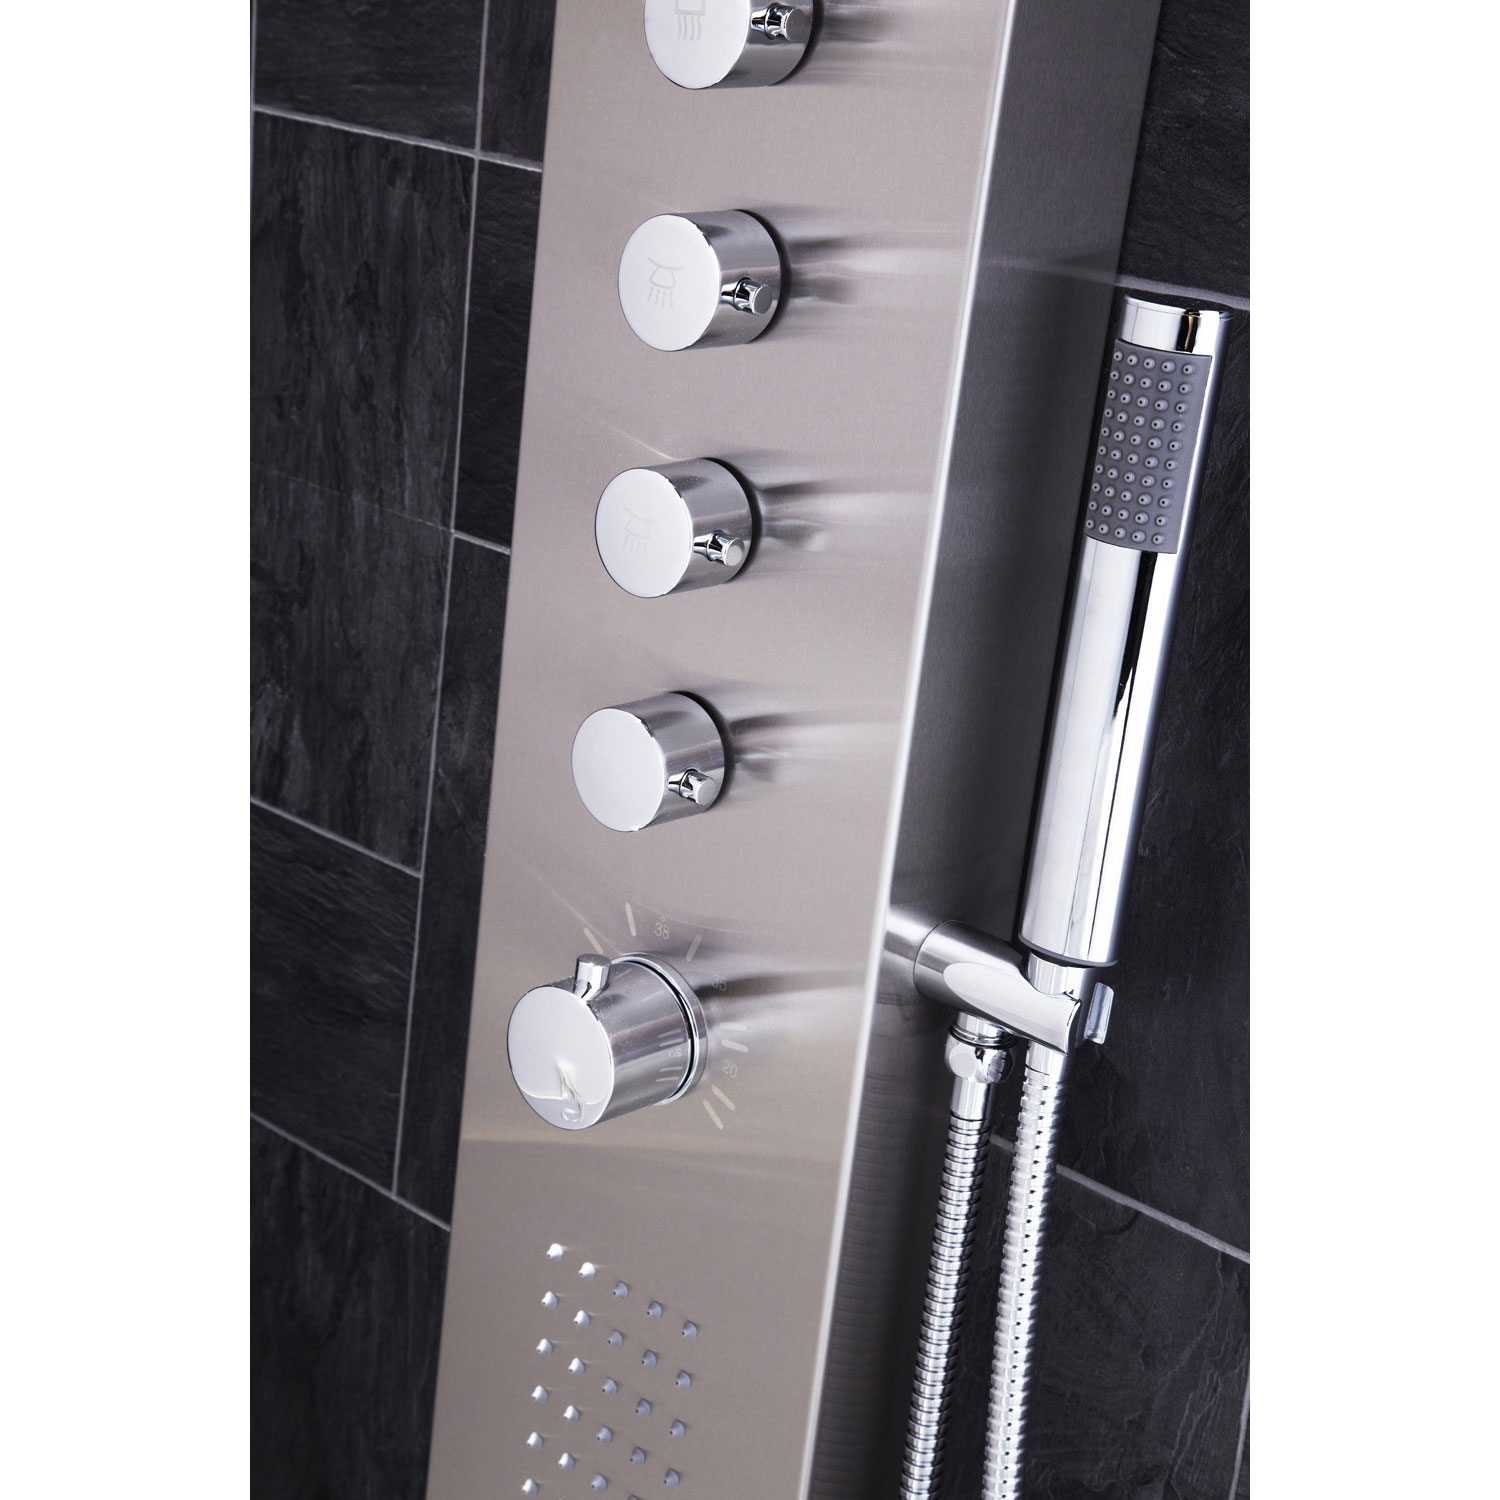 Verona Dharma Thermostatic Shower Panel 2 Built-in Body Jets with Shower Hand